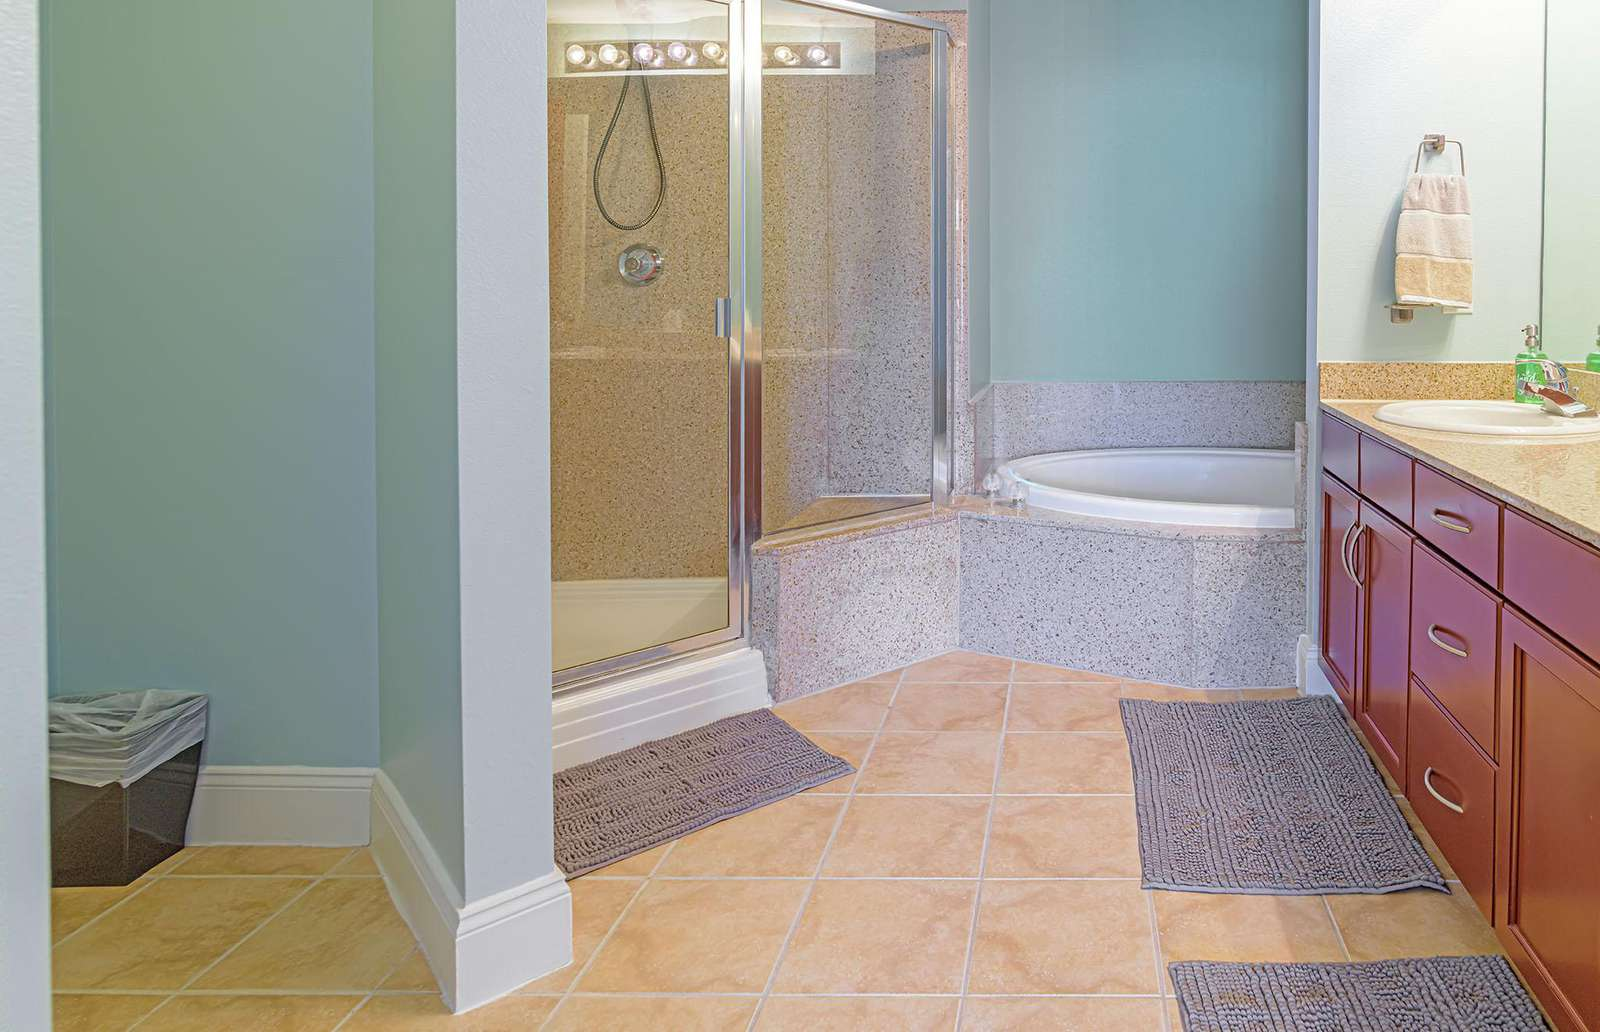 Master bath walk-in shower, soaker tub and double vanity!